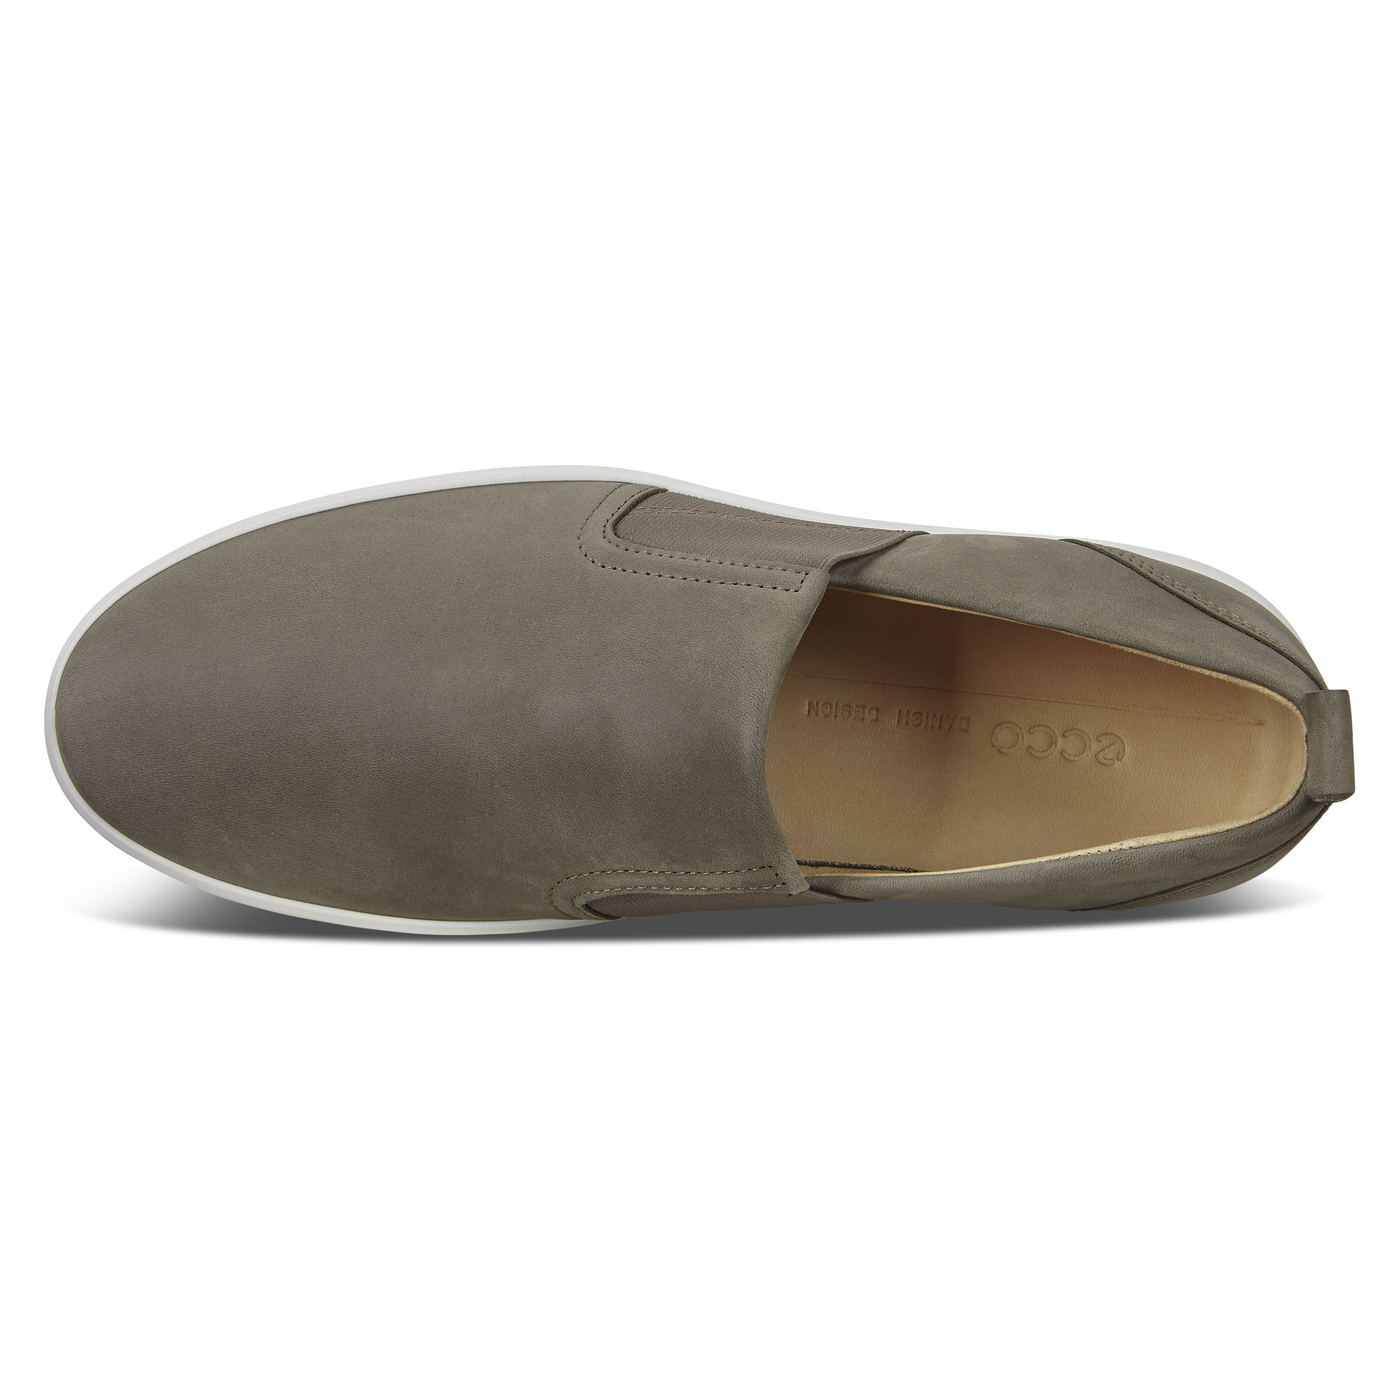 ECCO SOFT 8 Men's Slip On